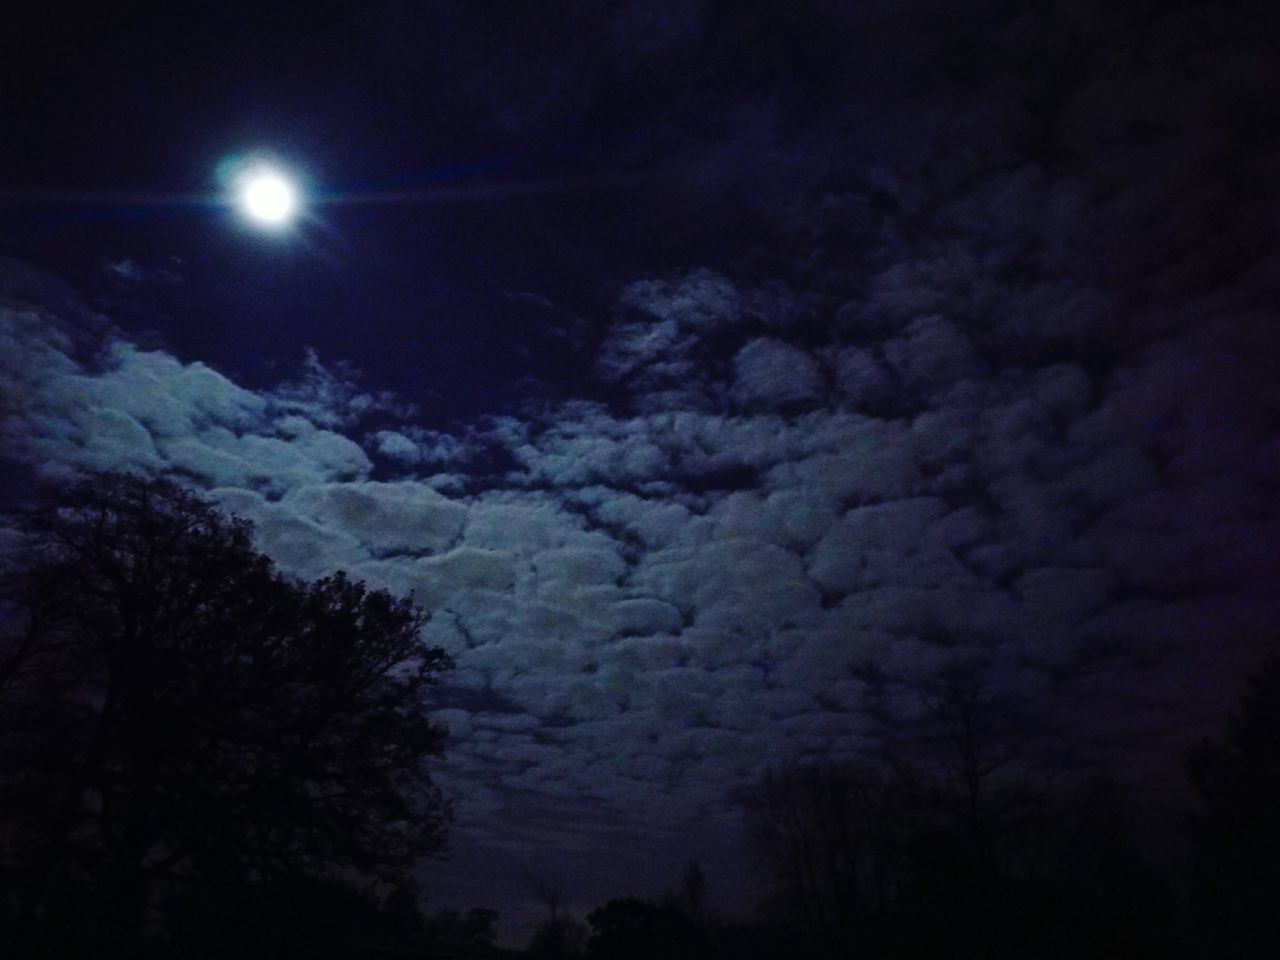 Clouds Night Moon Sky No People Outdoors Scenics Astronomy Cloud - Sky Tree Nature Landscape Space Beauty In Nature Star - Space Satellite View Silhouette Dinning With A View Supermoon Supermoon 2016 Nature Natural Condition Tranquility Beauty In Nature